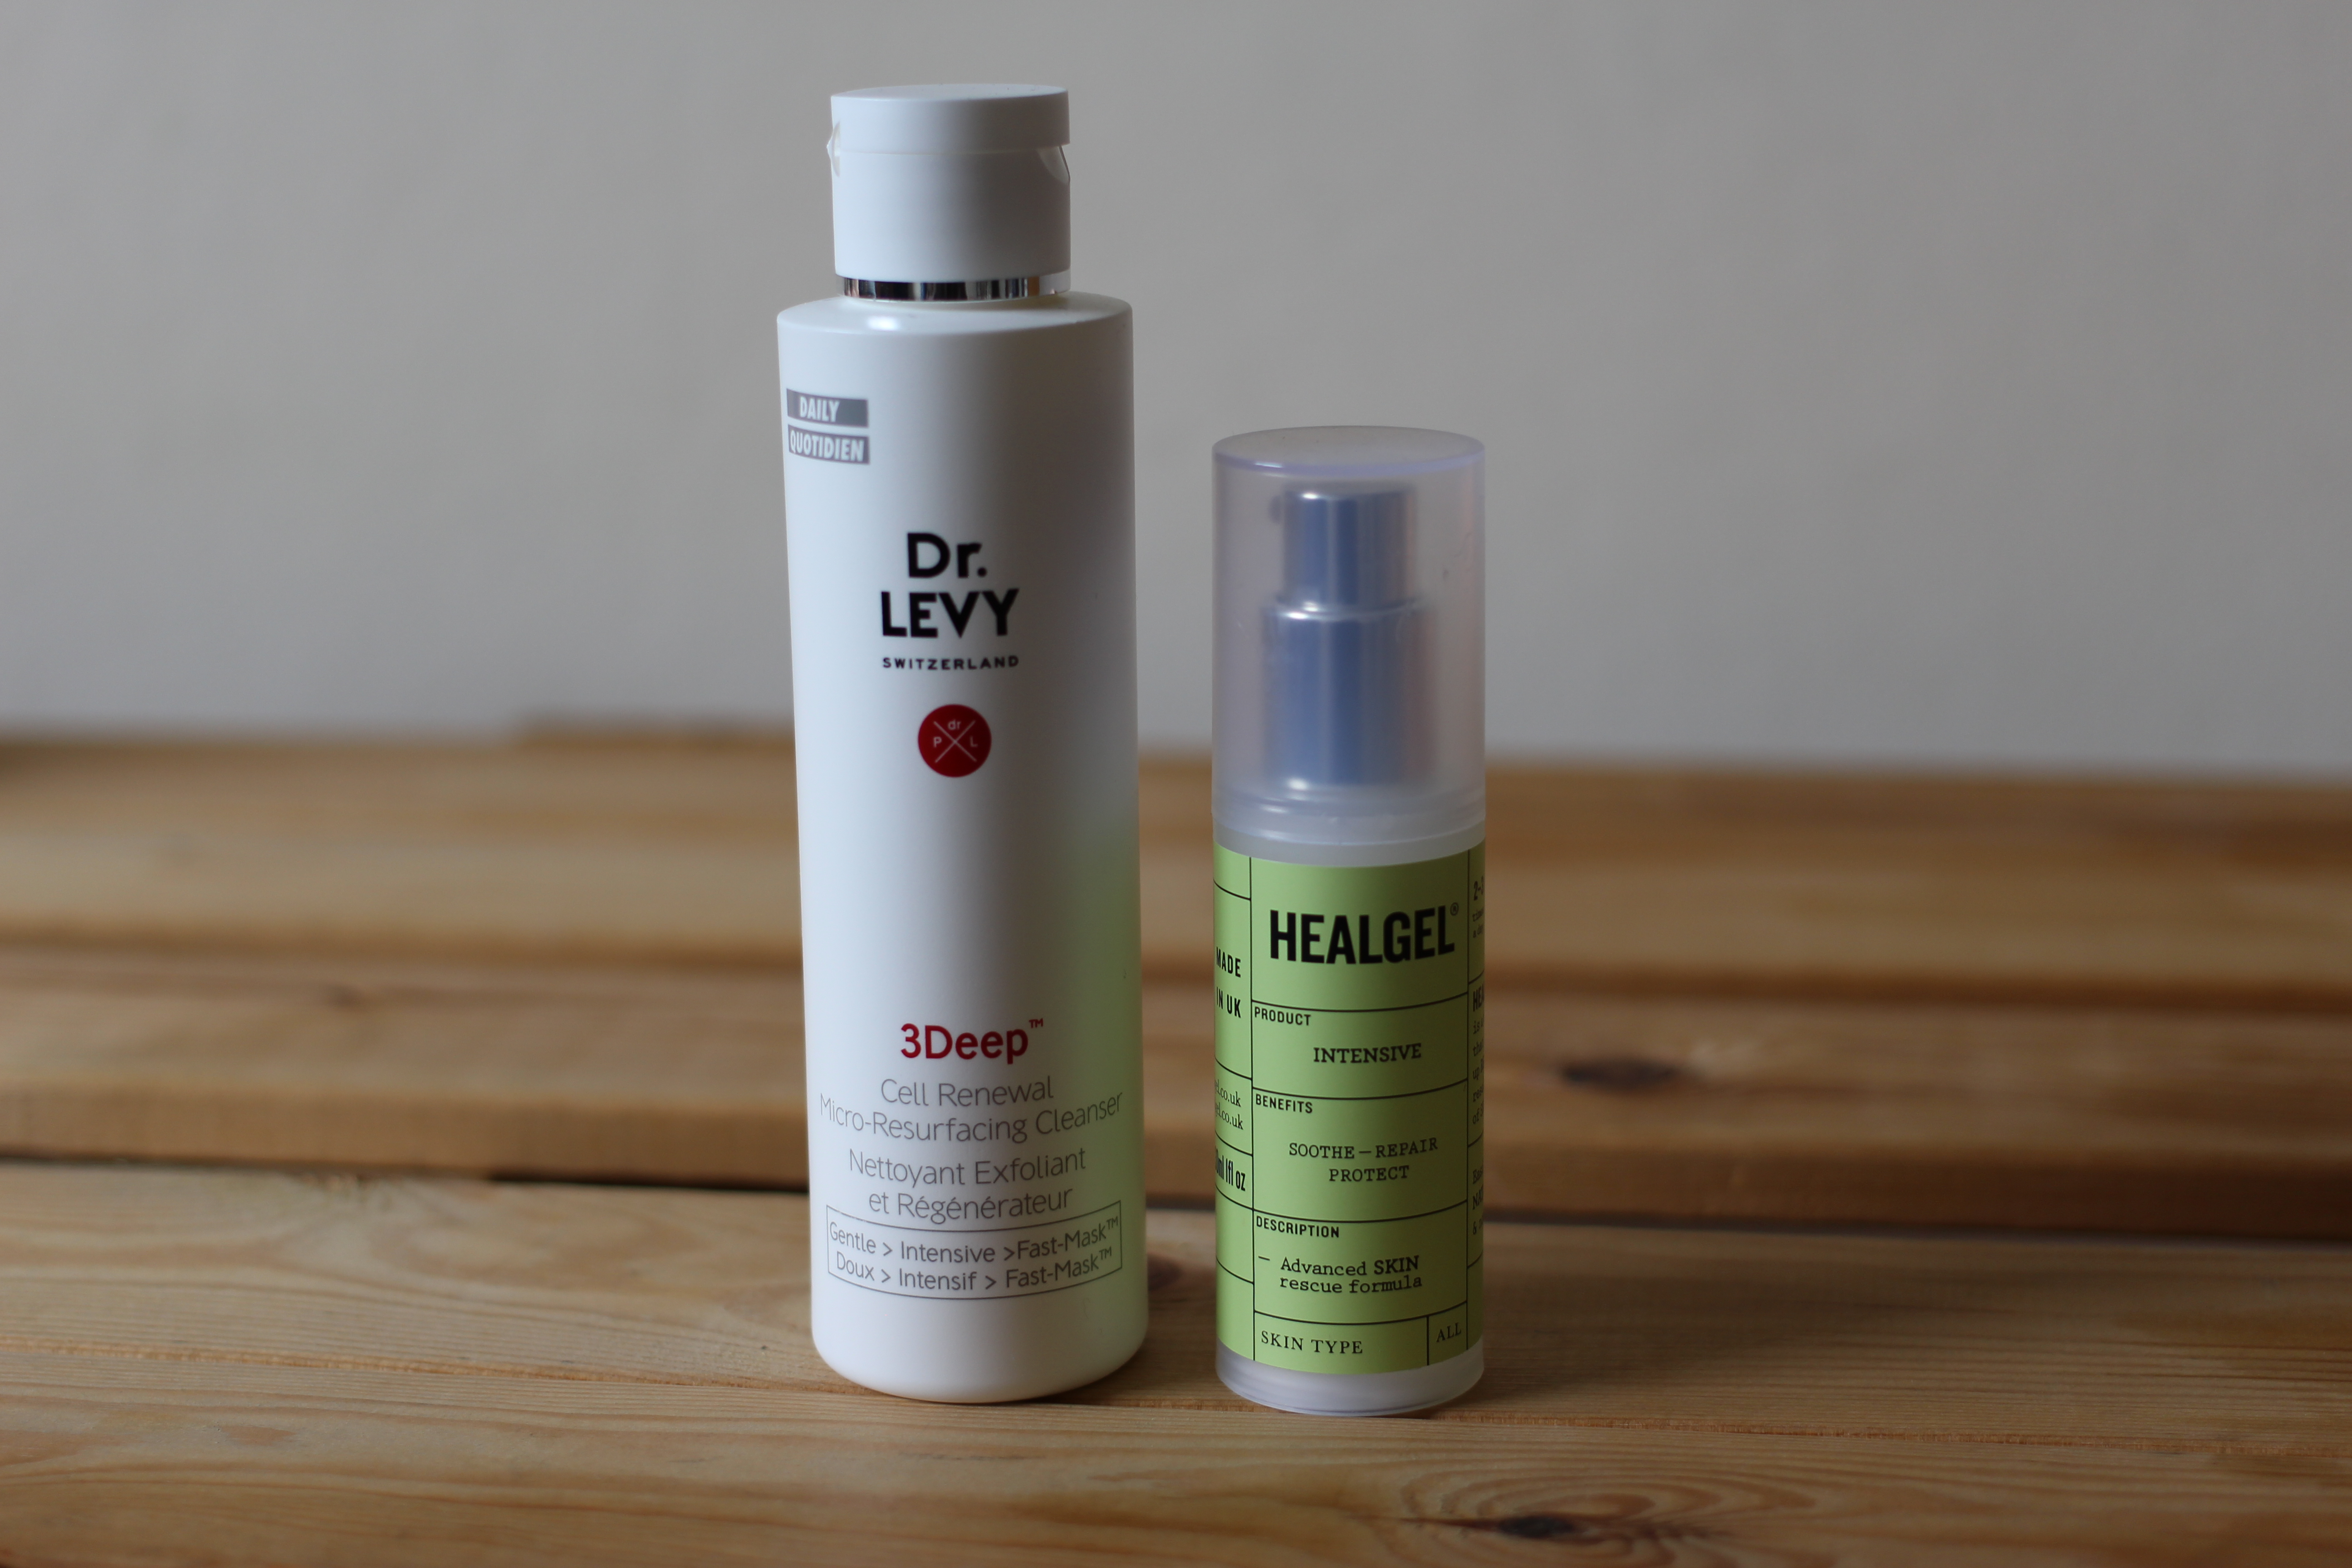 Dr Levy Cleanser and HealGel Review